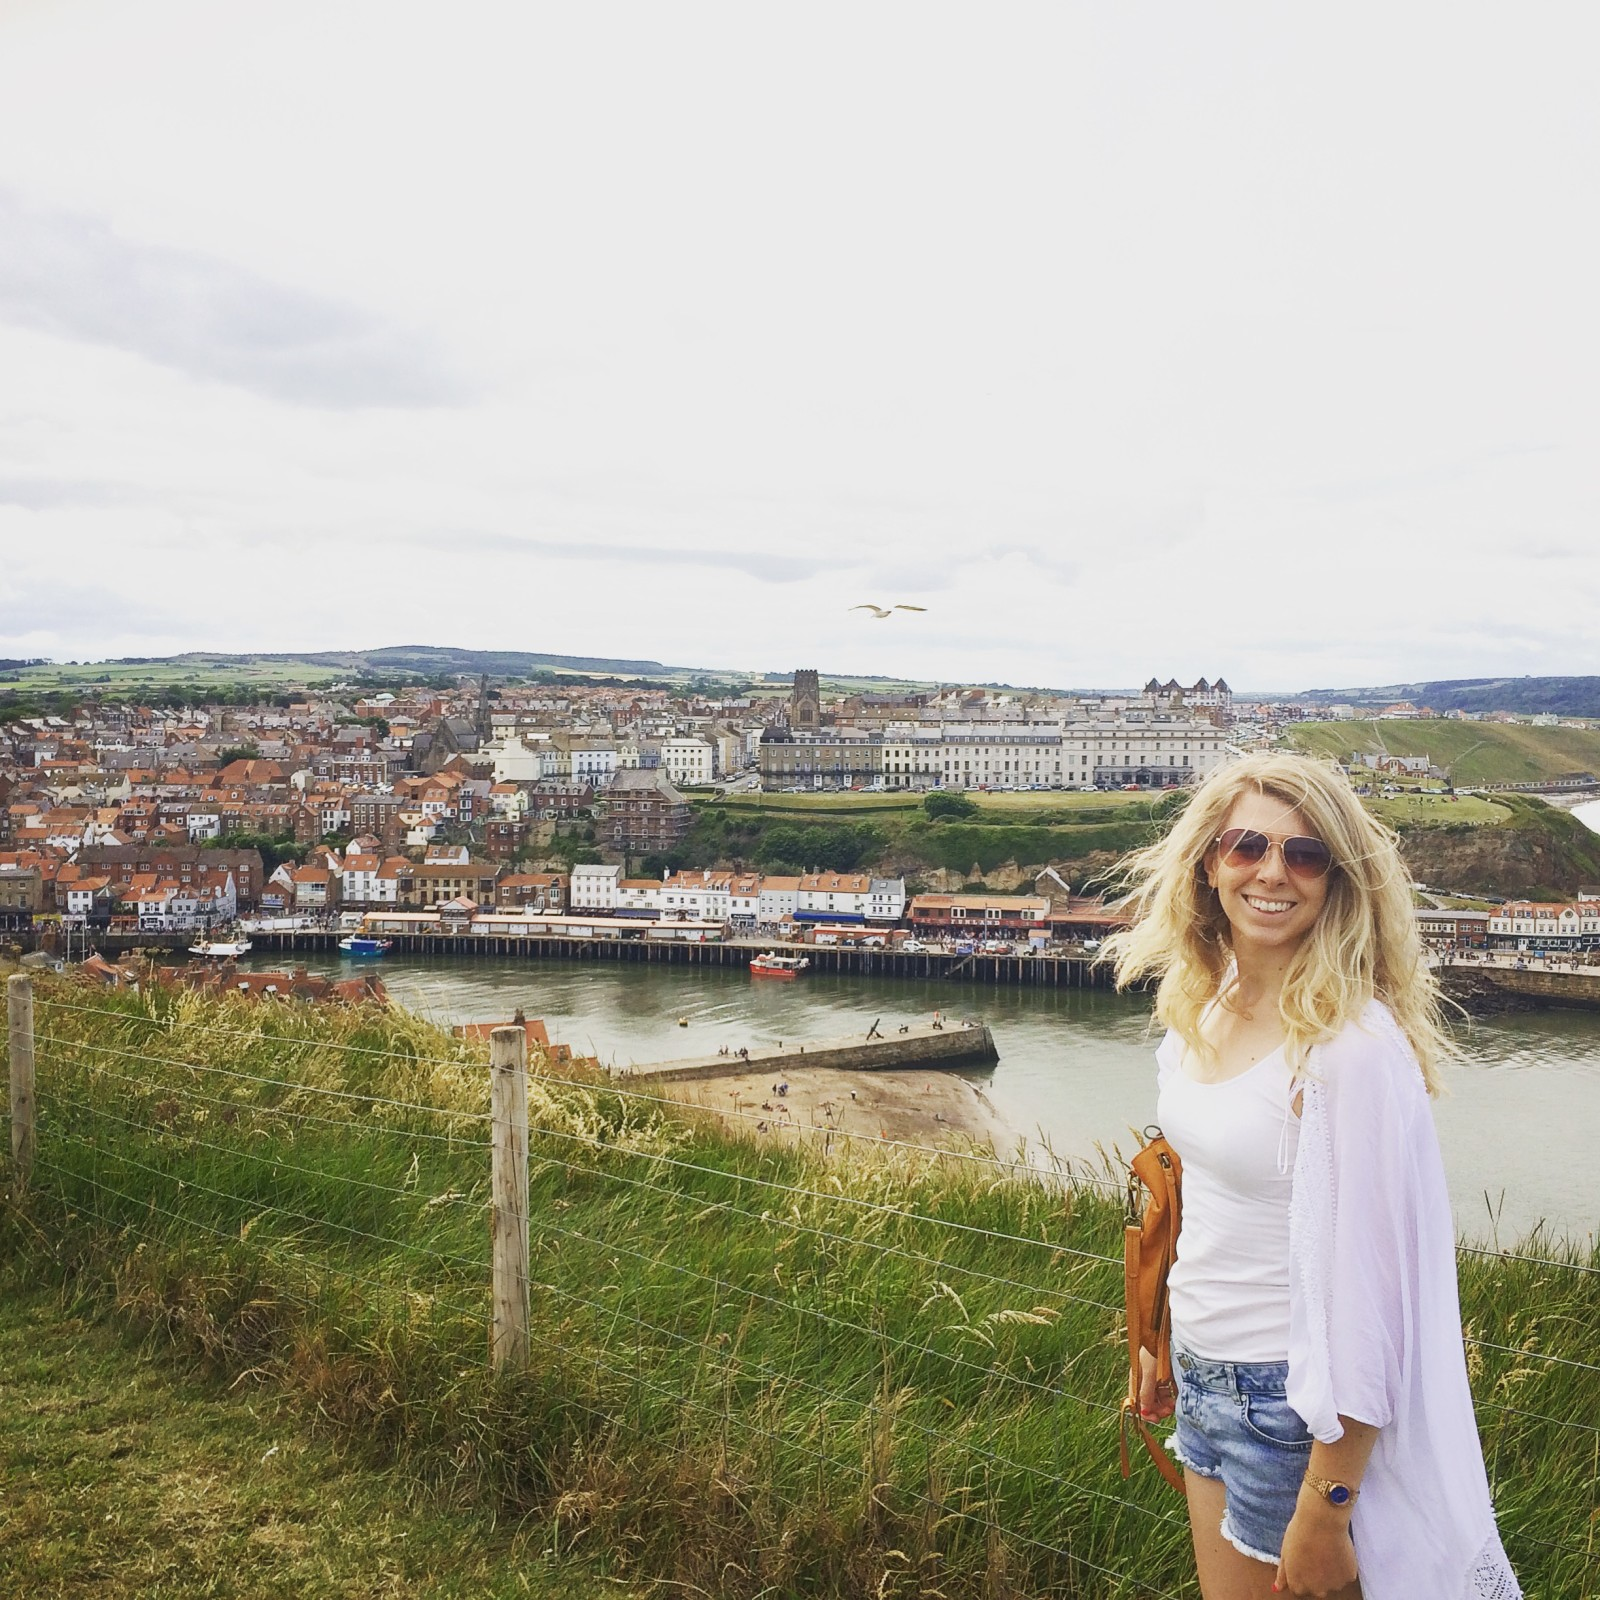 Stood looking over the harbour in Whitby